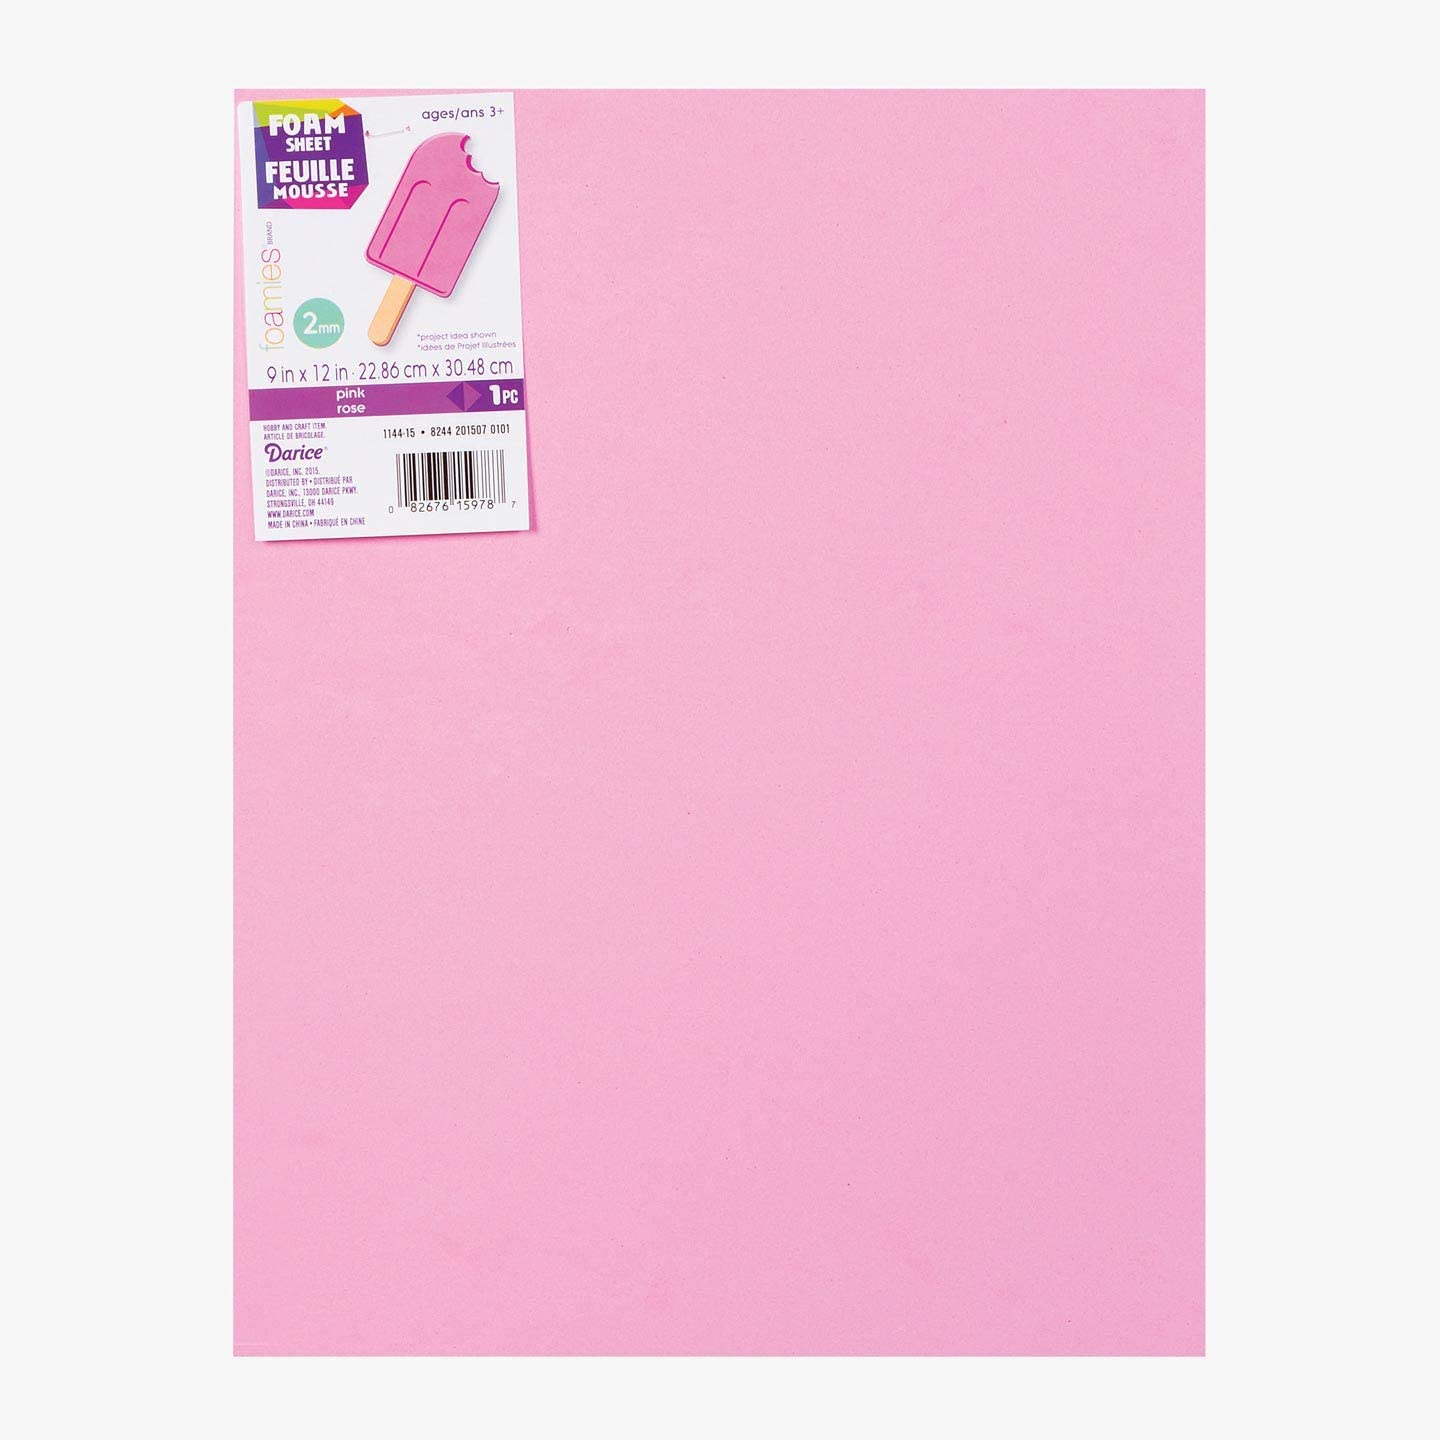 Darice Foamies Foam Sheet Pink 2mm 10-Pack unisex x inches Thick 9 famous 12